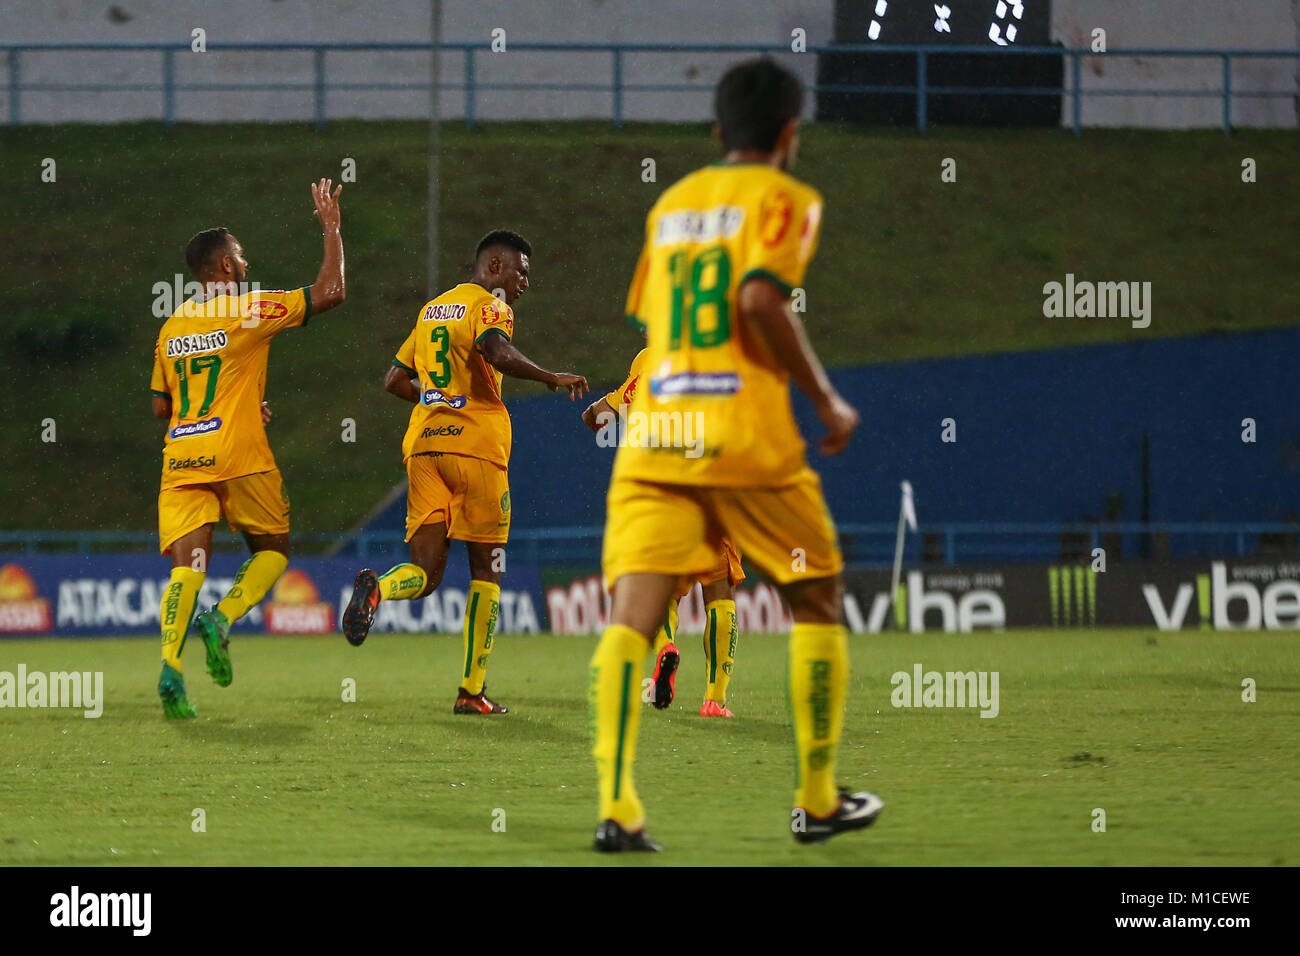 SANTO ANDRÉ, SP - 29.01.2018: SANTO ANDRÉ X MIRASSOL - Jesiel do Mirasol celebrates his goal during the match between Stock Photo